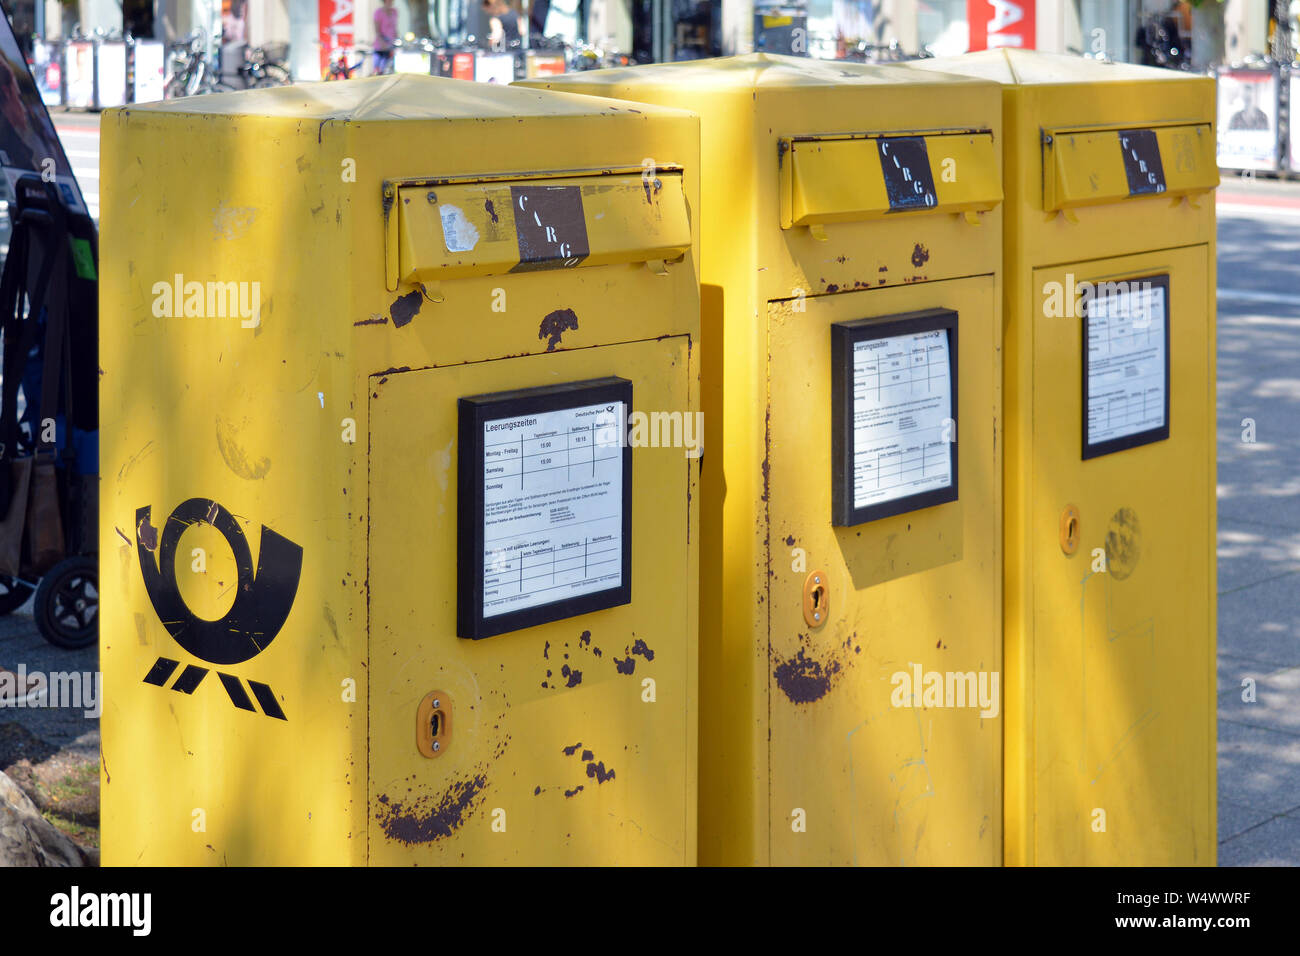 Heidelberg, Germany - June 2019: Three yellow official public mail boxes in a bad state on street Stock Photo